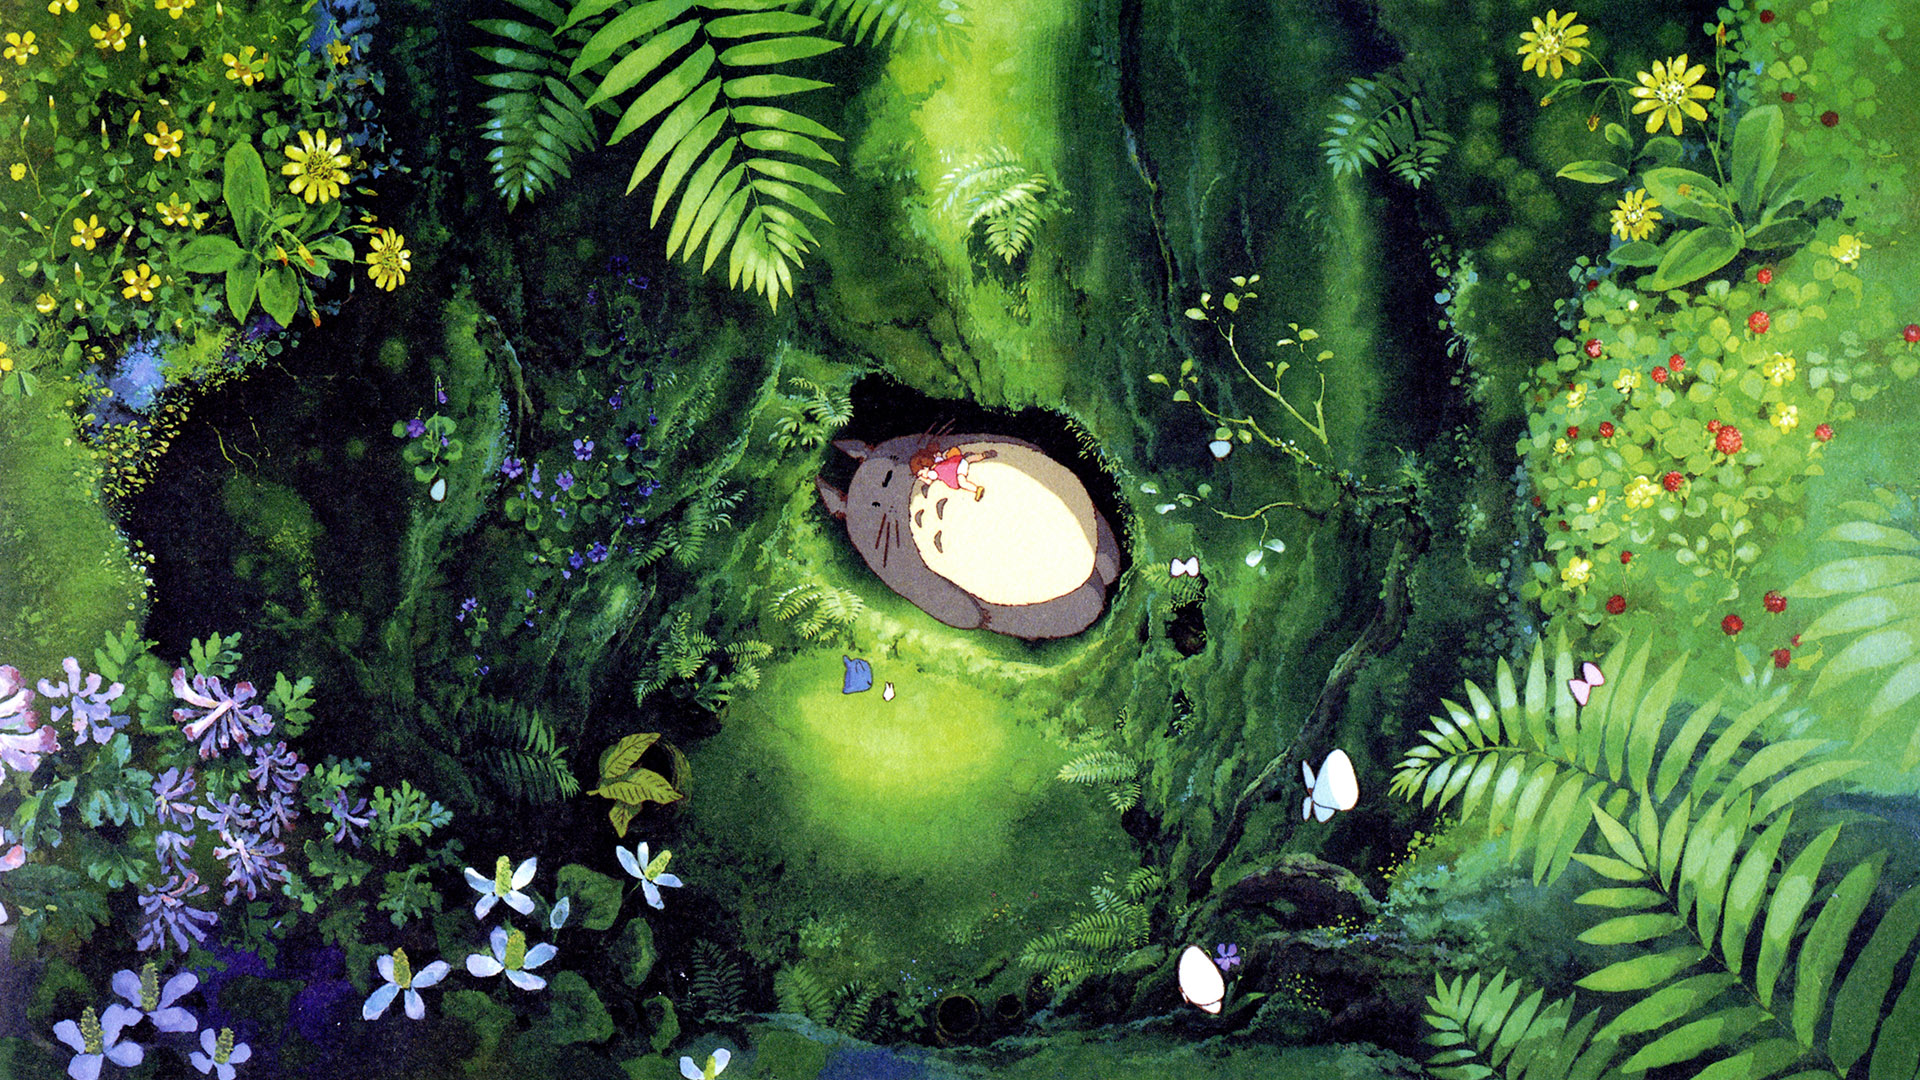 My Neighbor Totoro Hd Wallpaper Background Image 1920x1080 Id 517085 Wallpaper Abyss